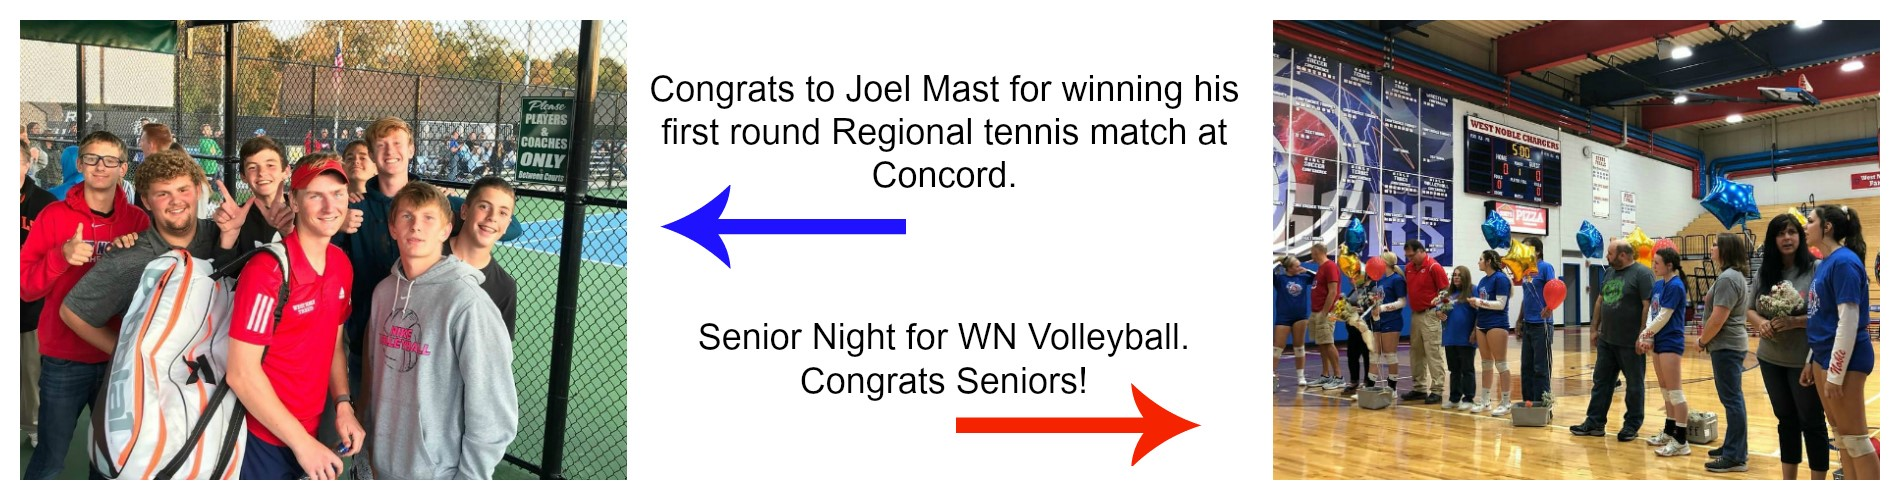 Senior Volleyball night.